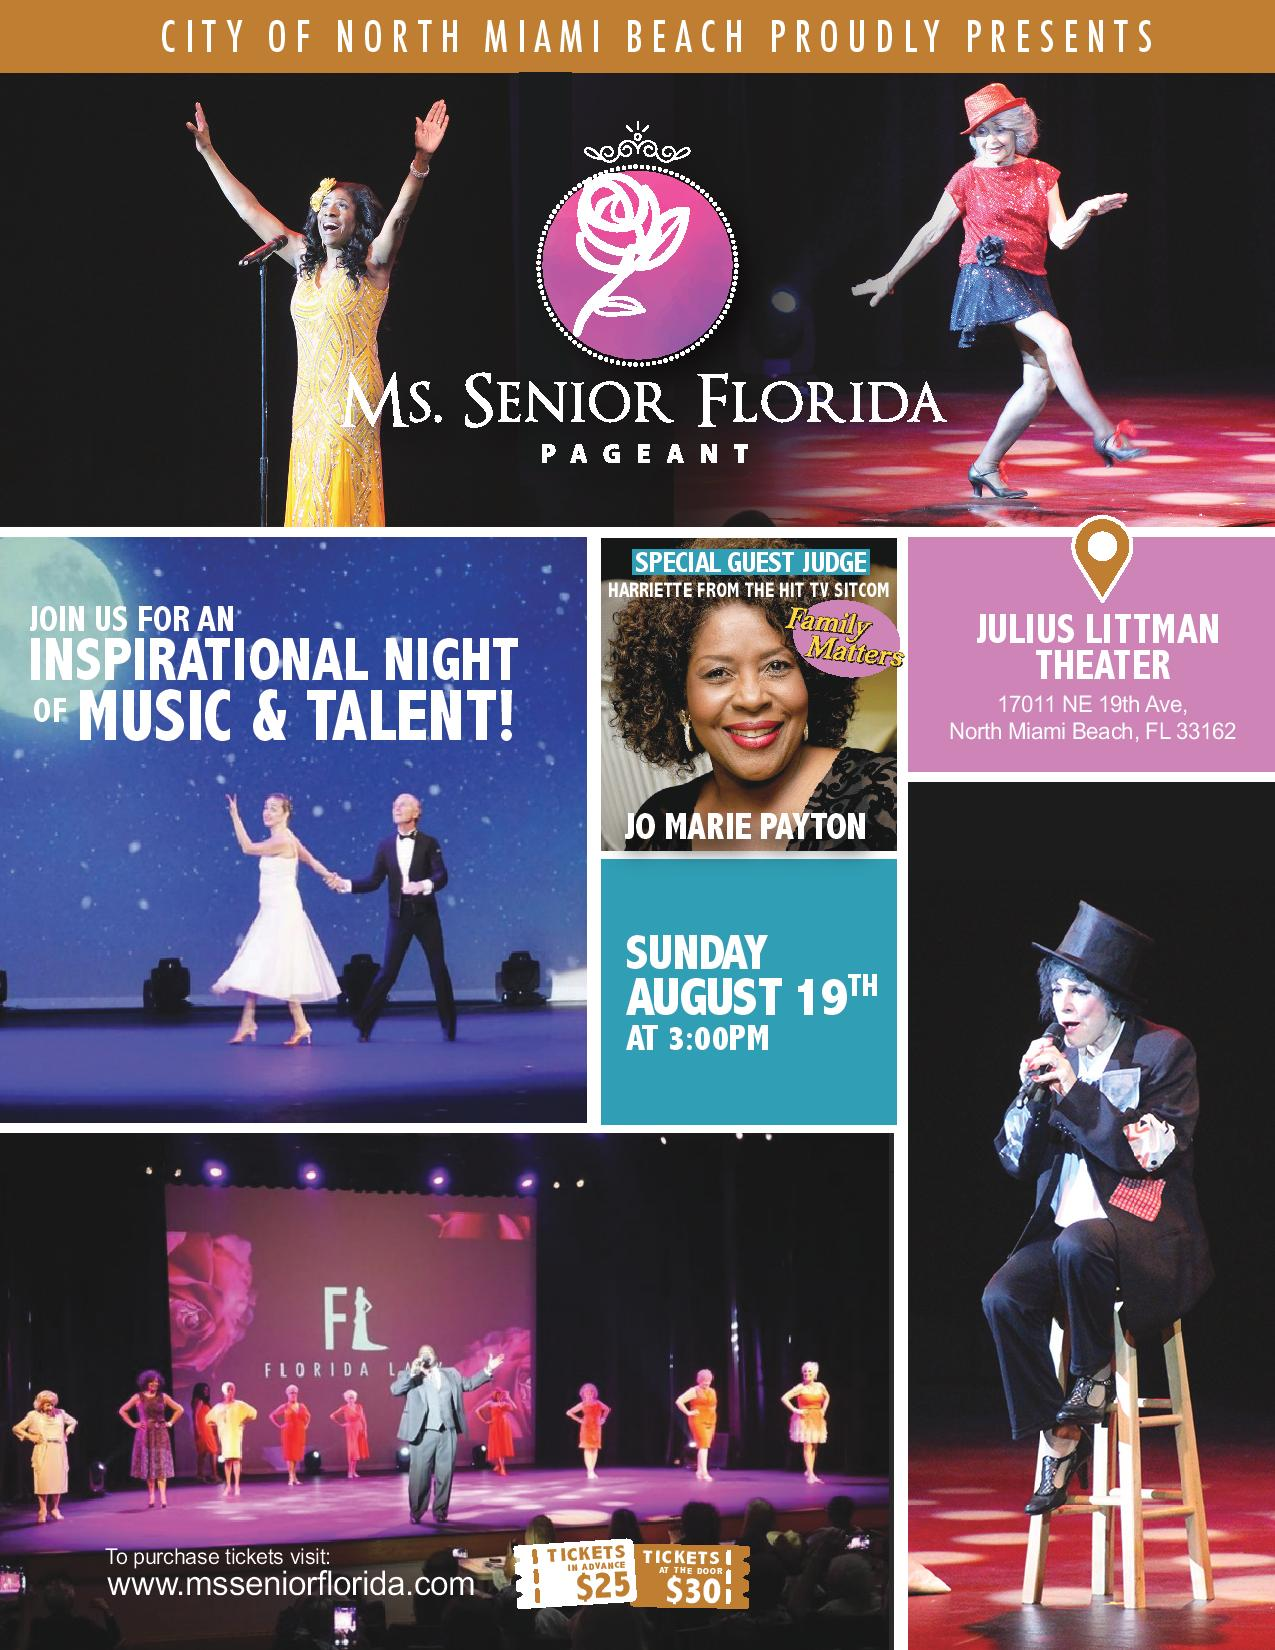 Ms. Senior Florida